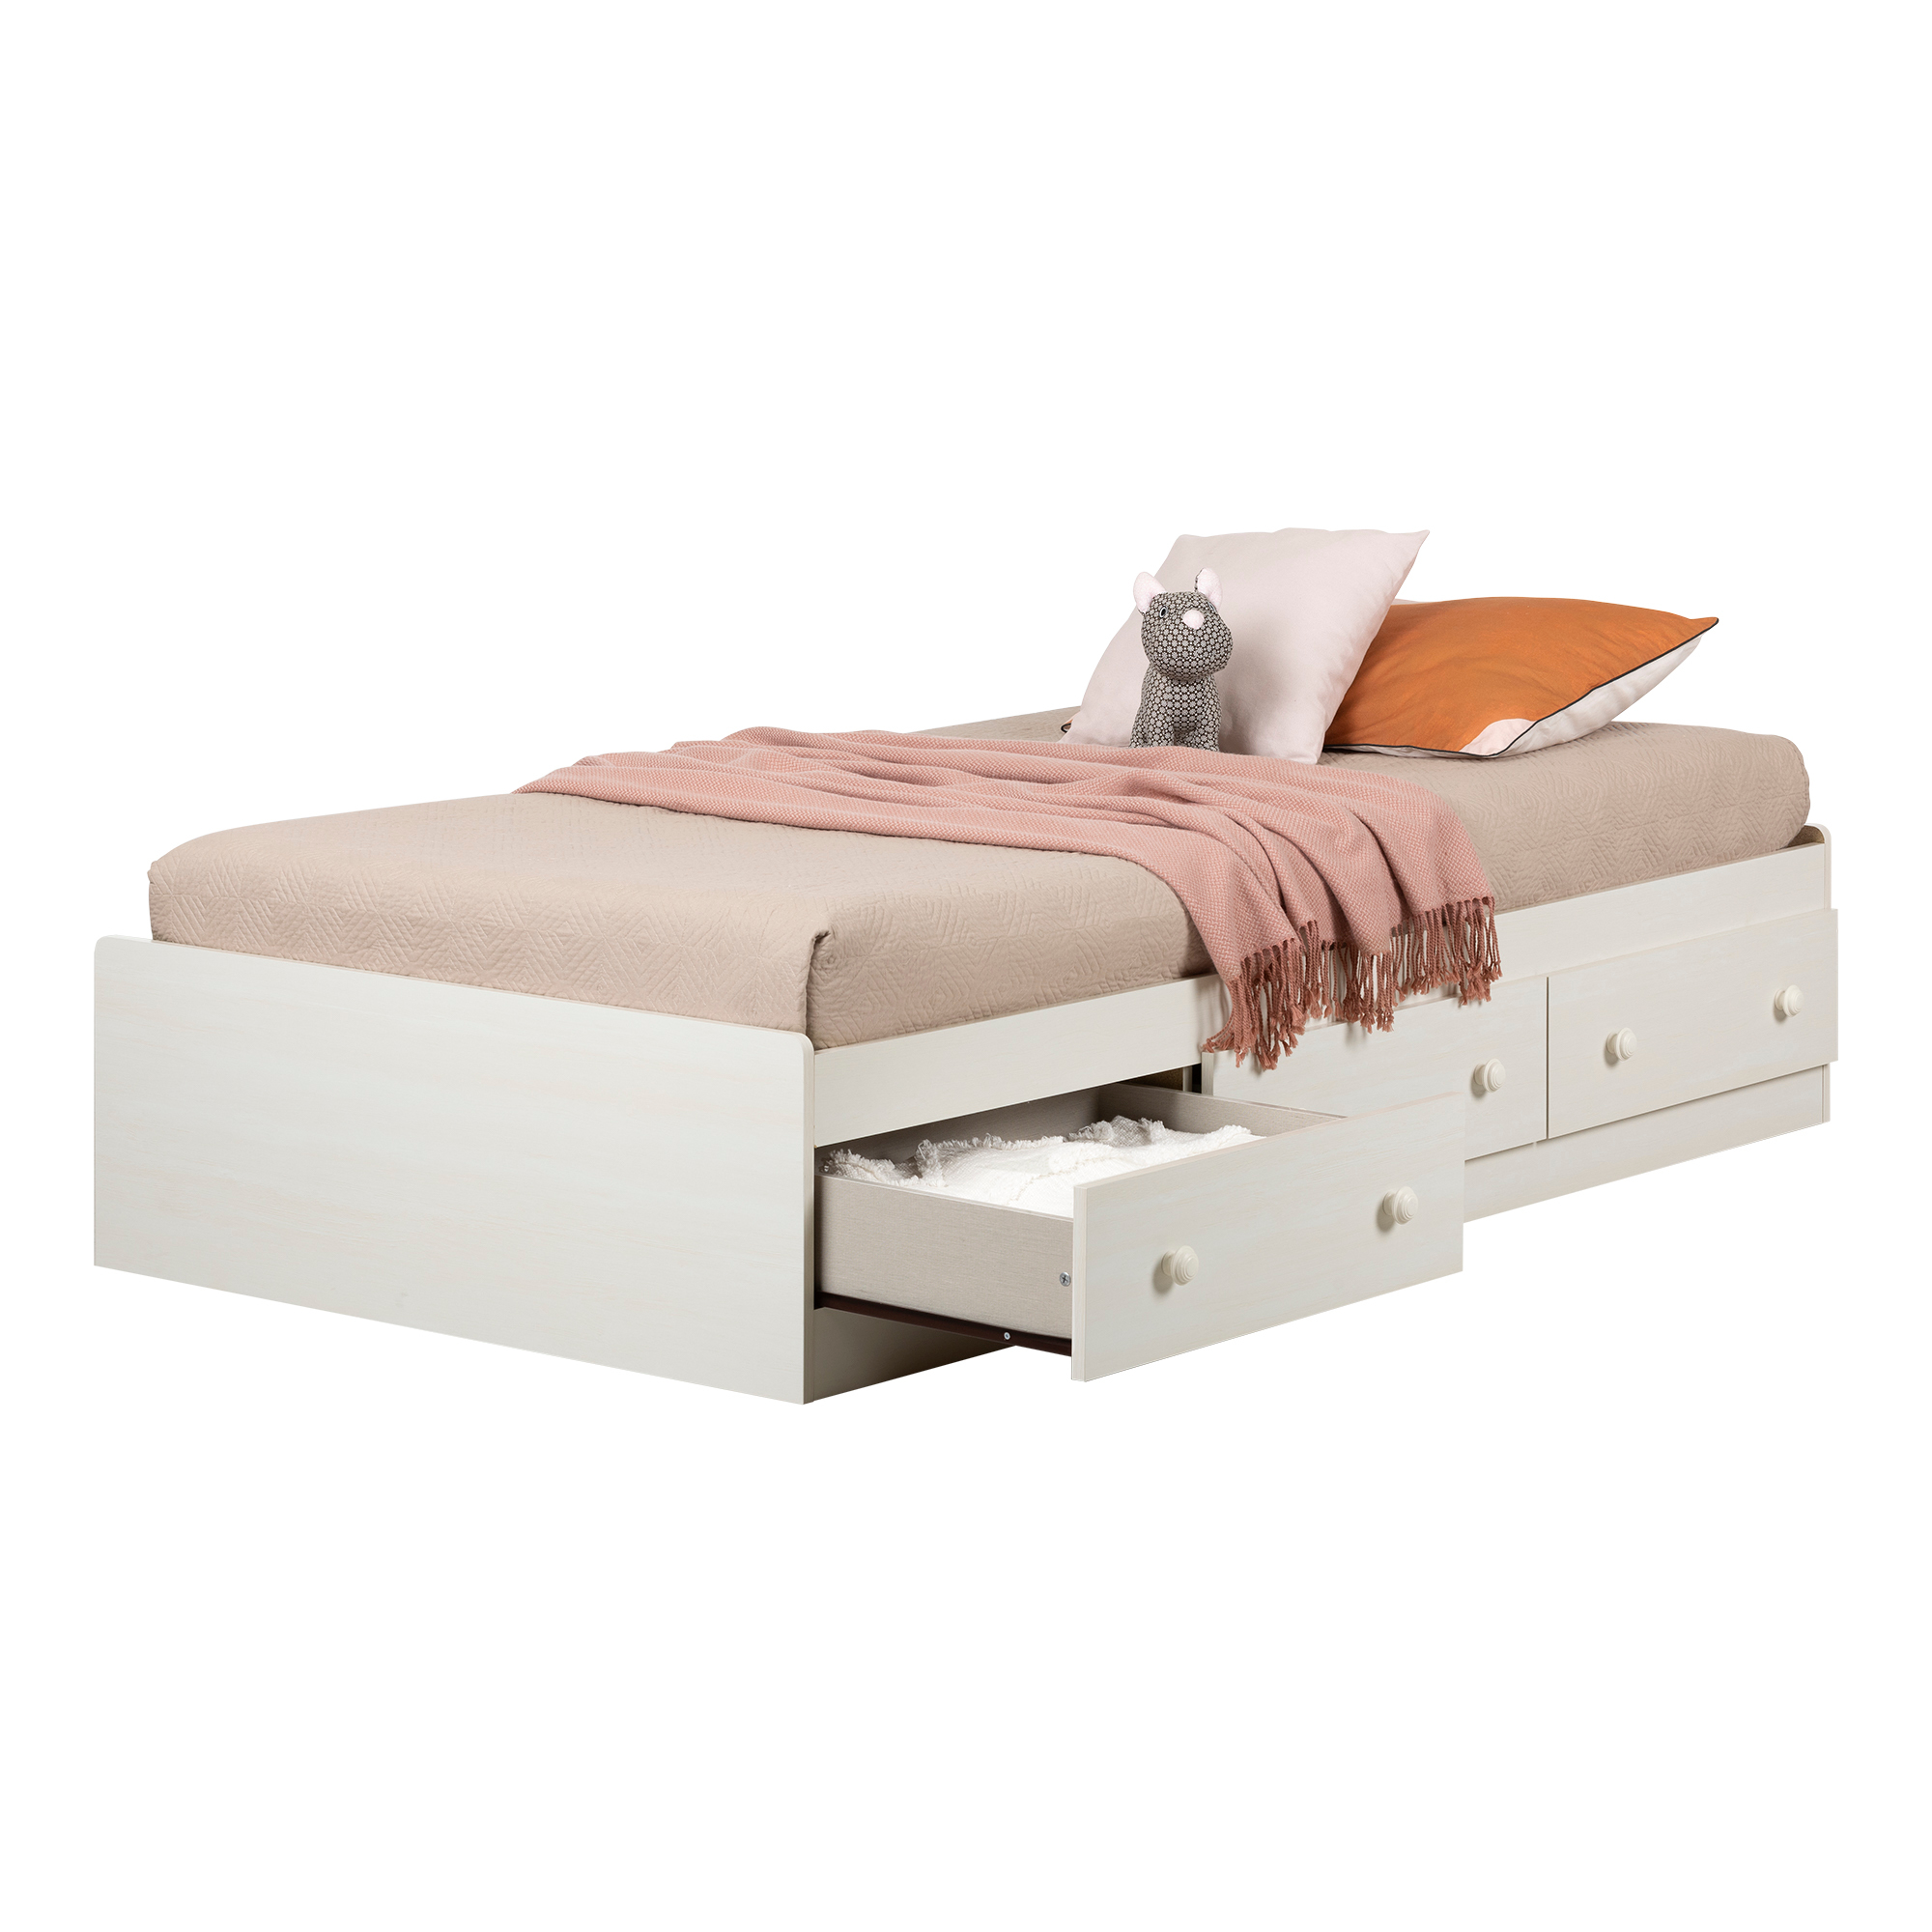 Home Garden Beds Bed Frames Twin Storage Bed With 3 Drawers 39 Inch White And Maple Bedroom Furniture New Anios Am